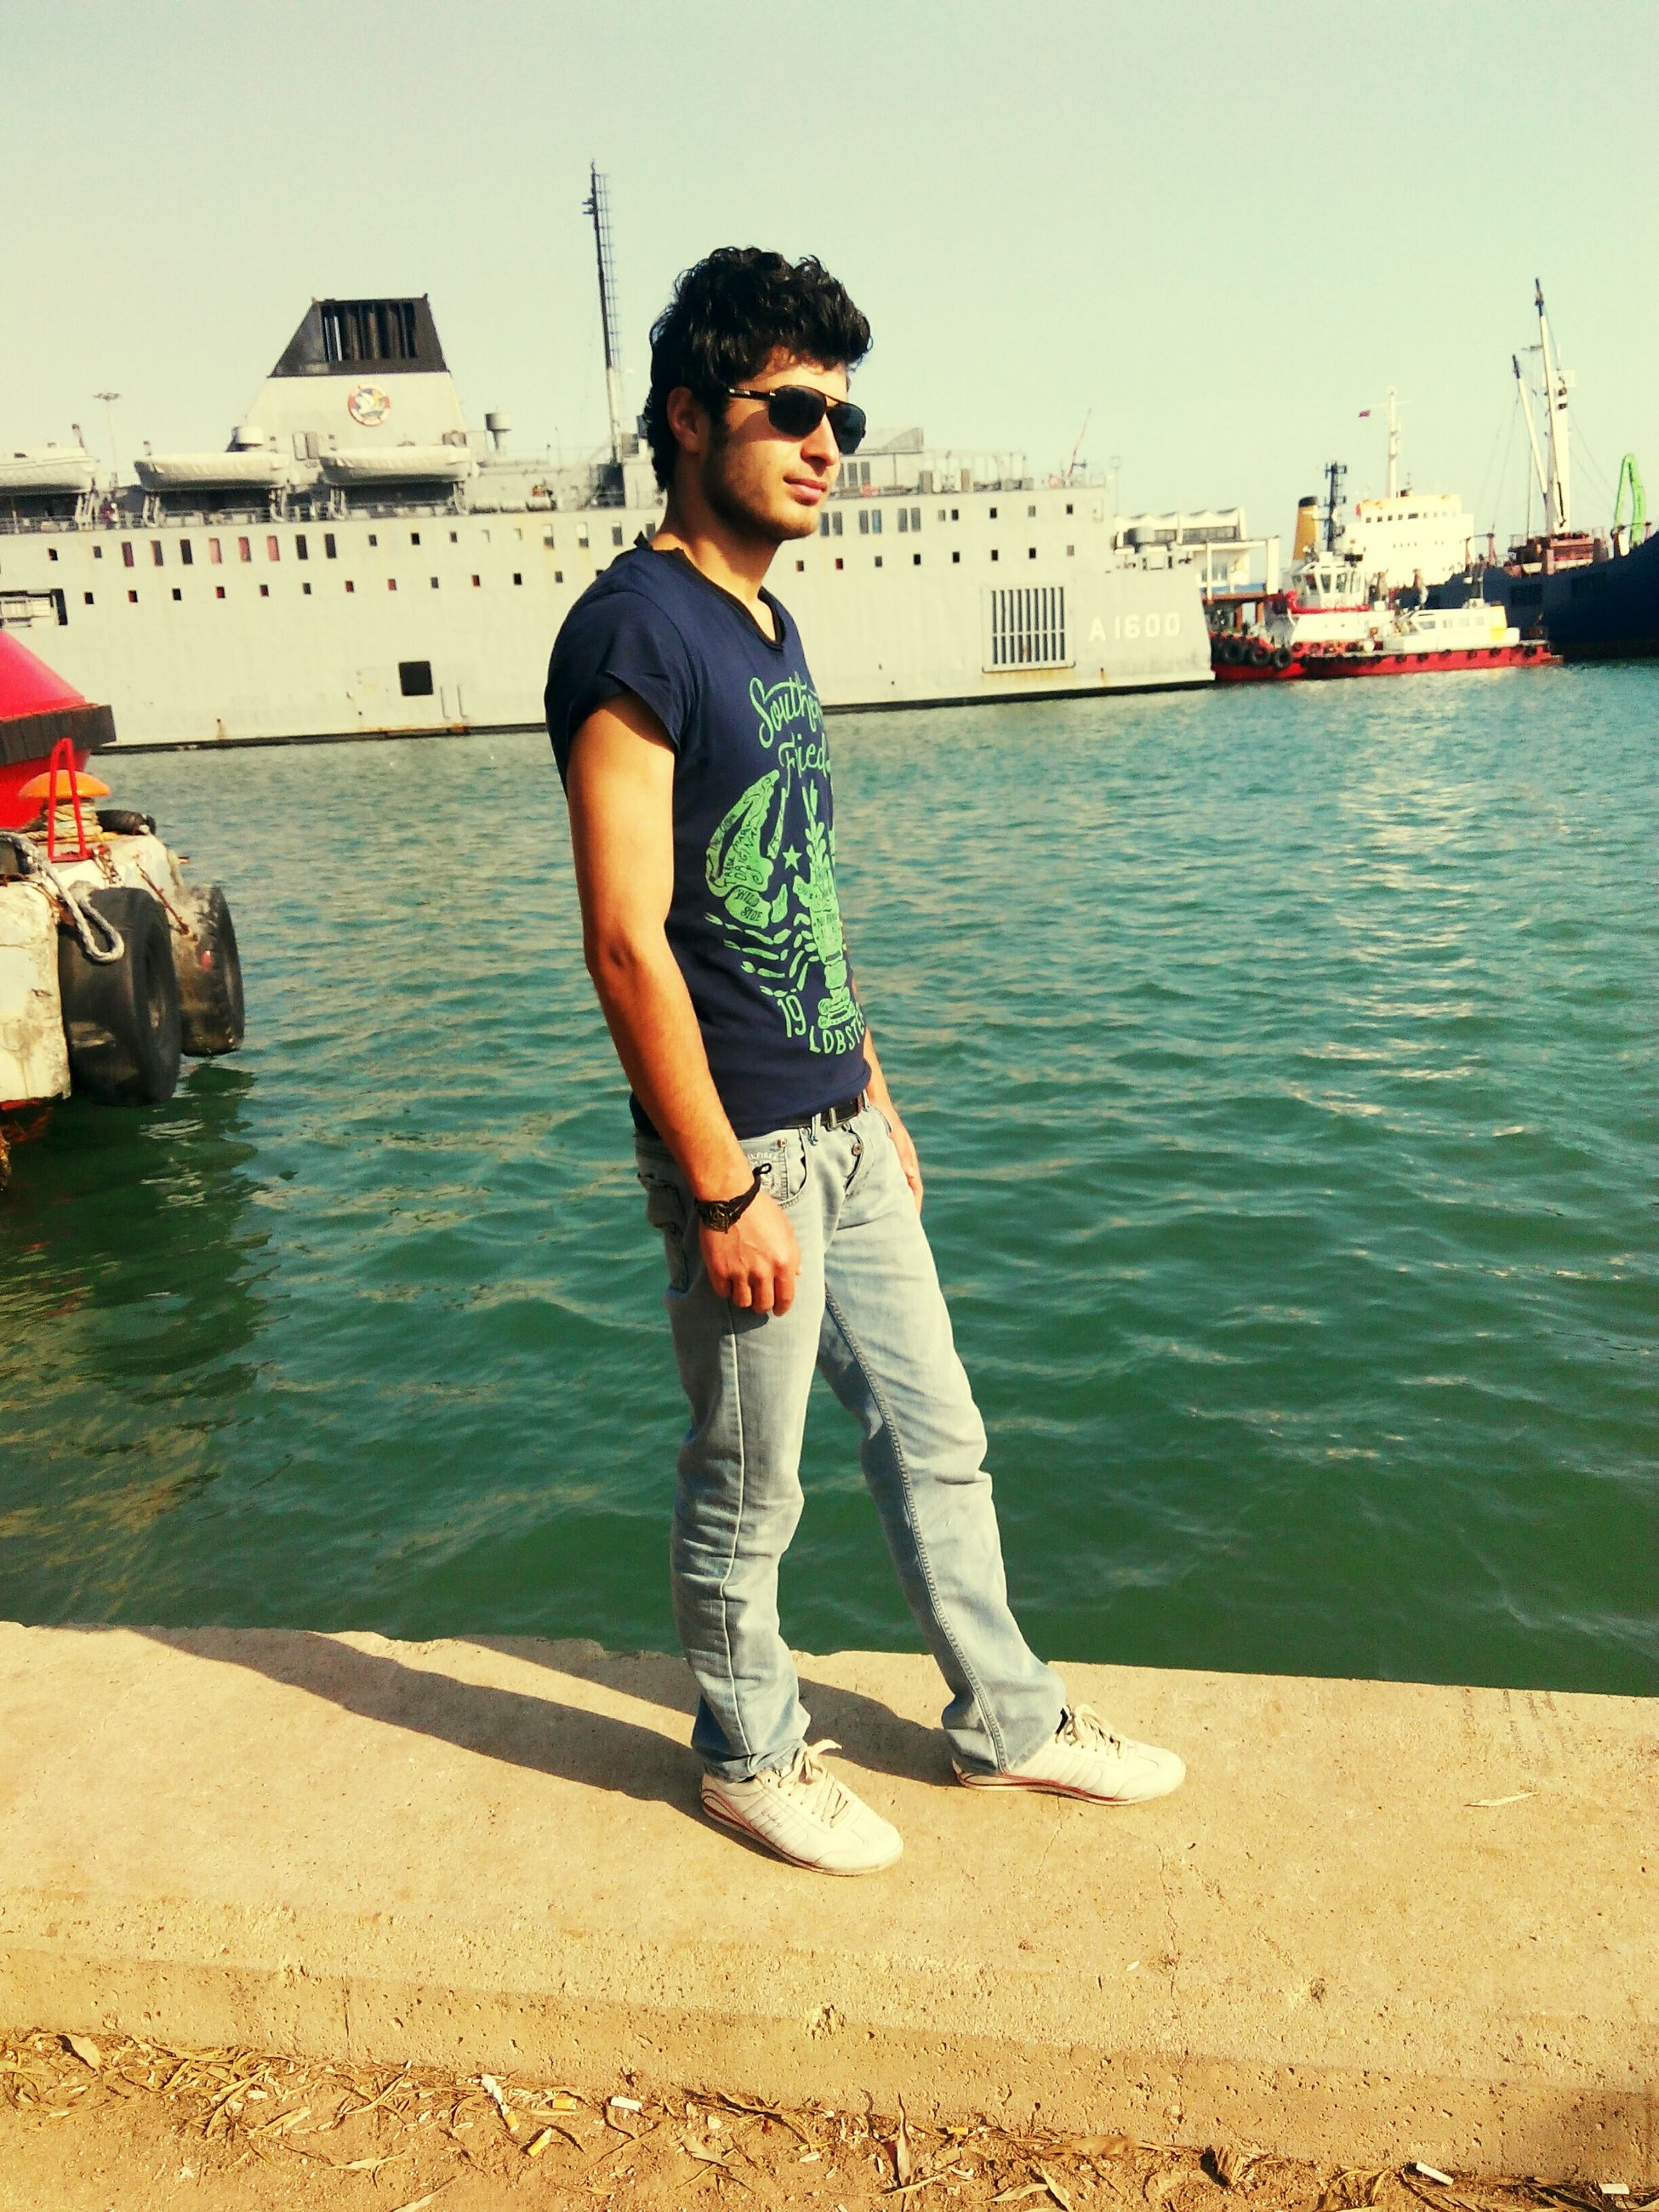 water, person, casual clothing, lifestyles, full length, young adult, leisure activity, nautical vessel, young men, sea, standing, transportation, sunglasses, front view, smiling, portrait, sky, looking at camera